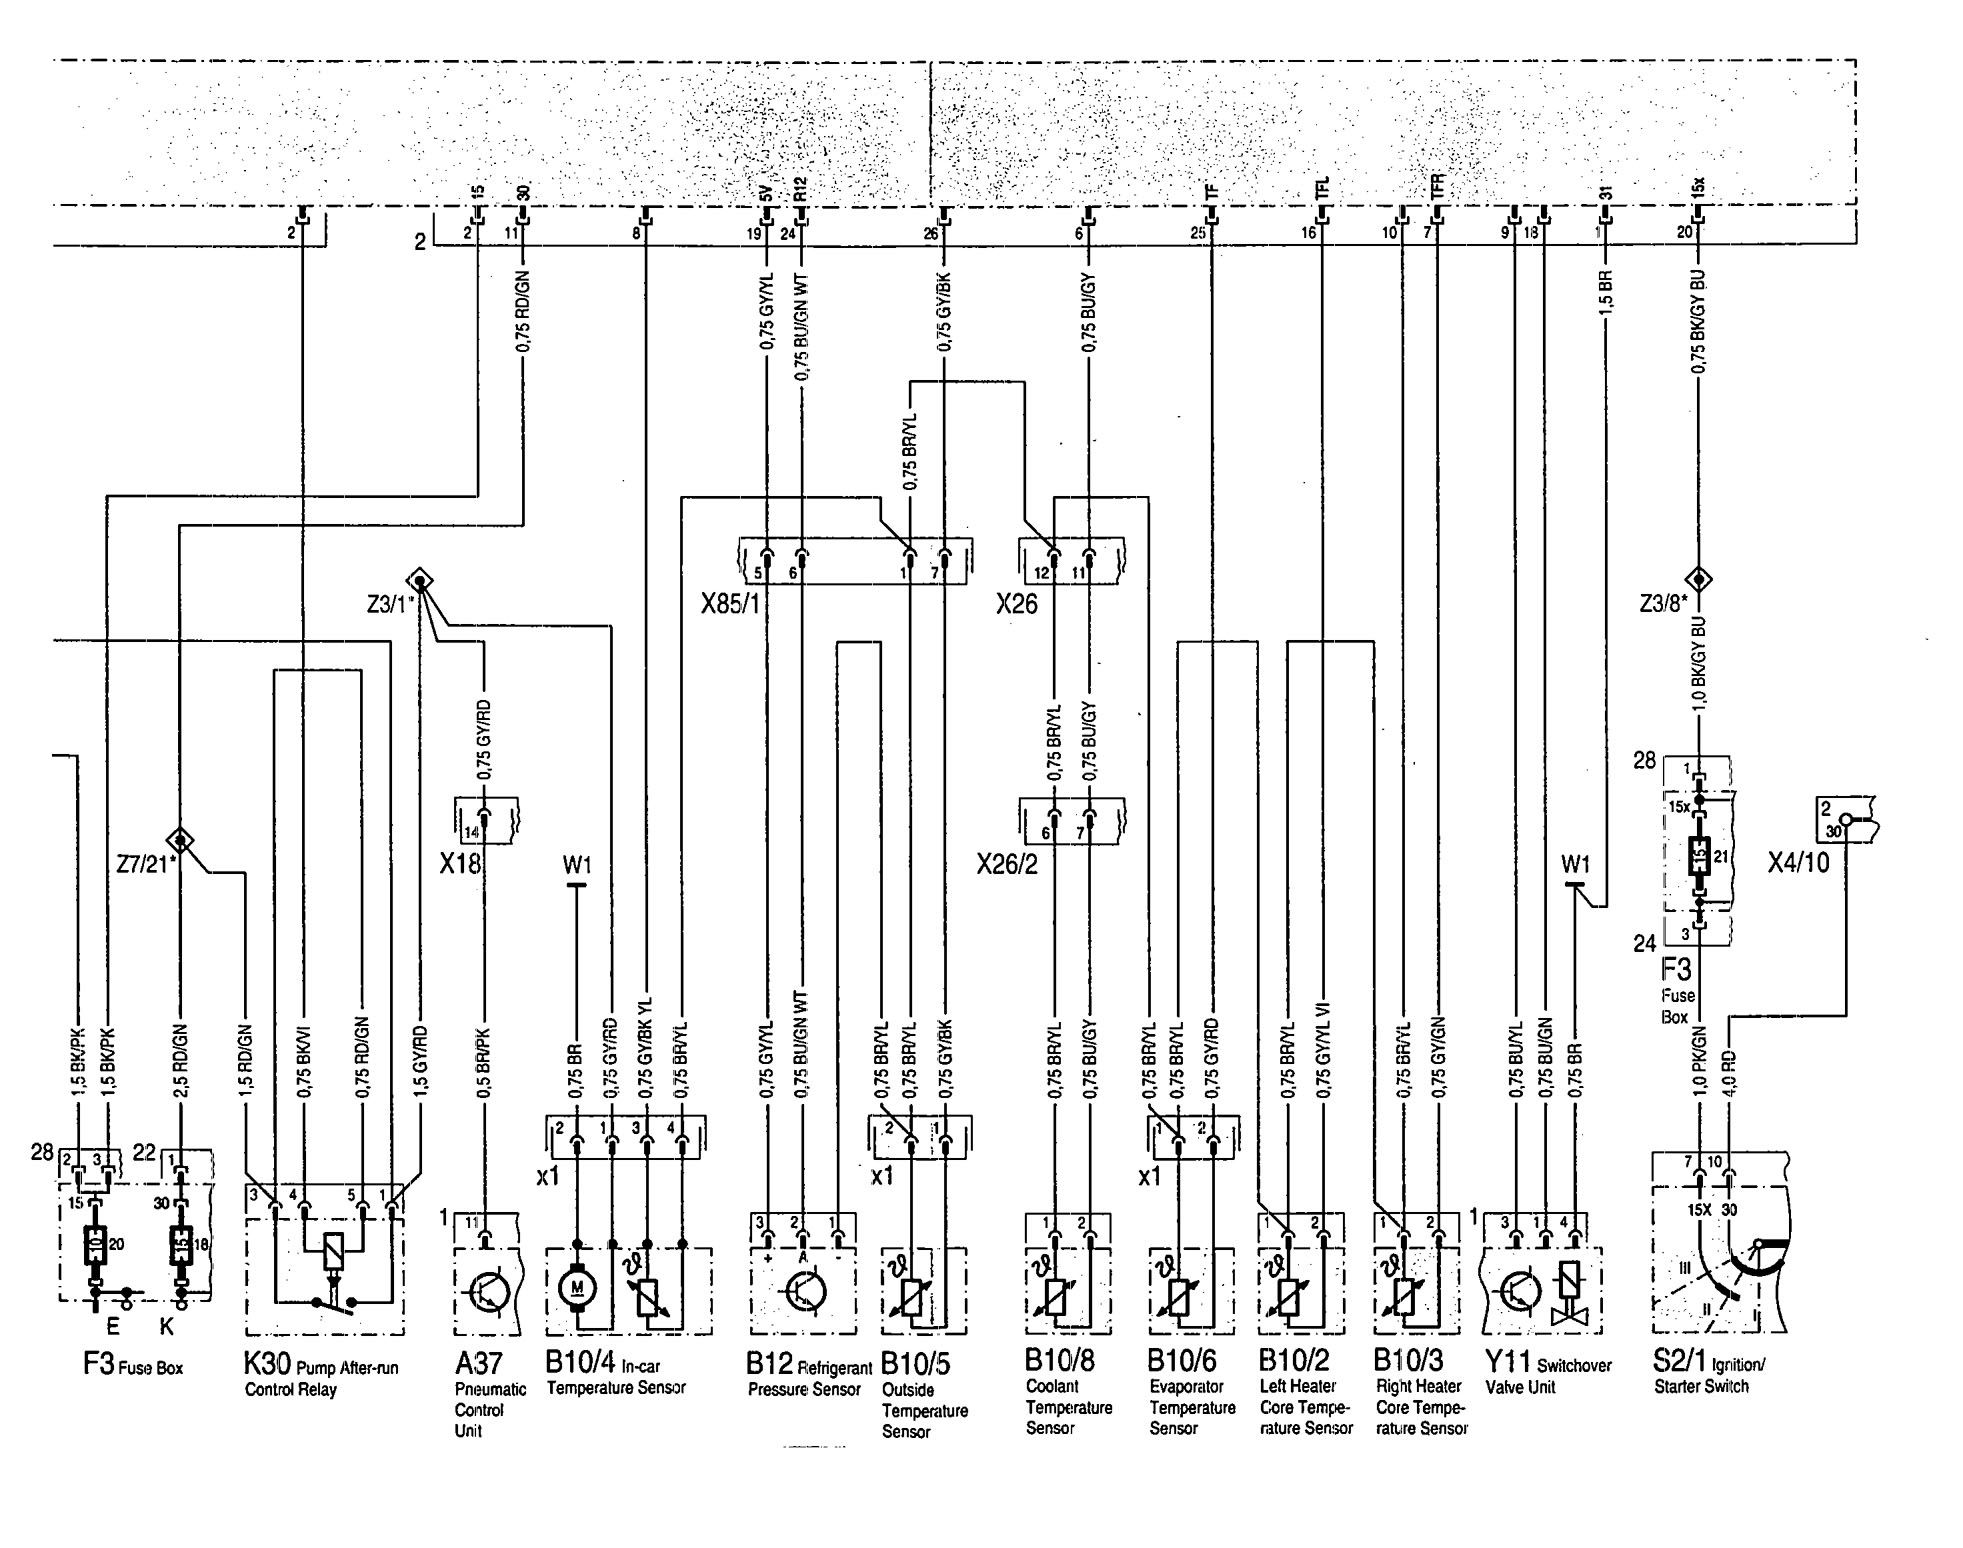 Fuse Schematic For Mercedes S500 2000 Box Home